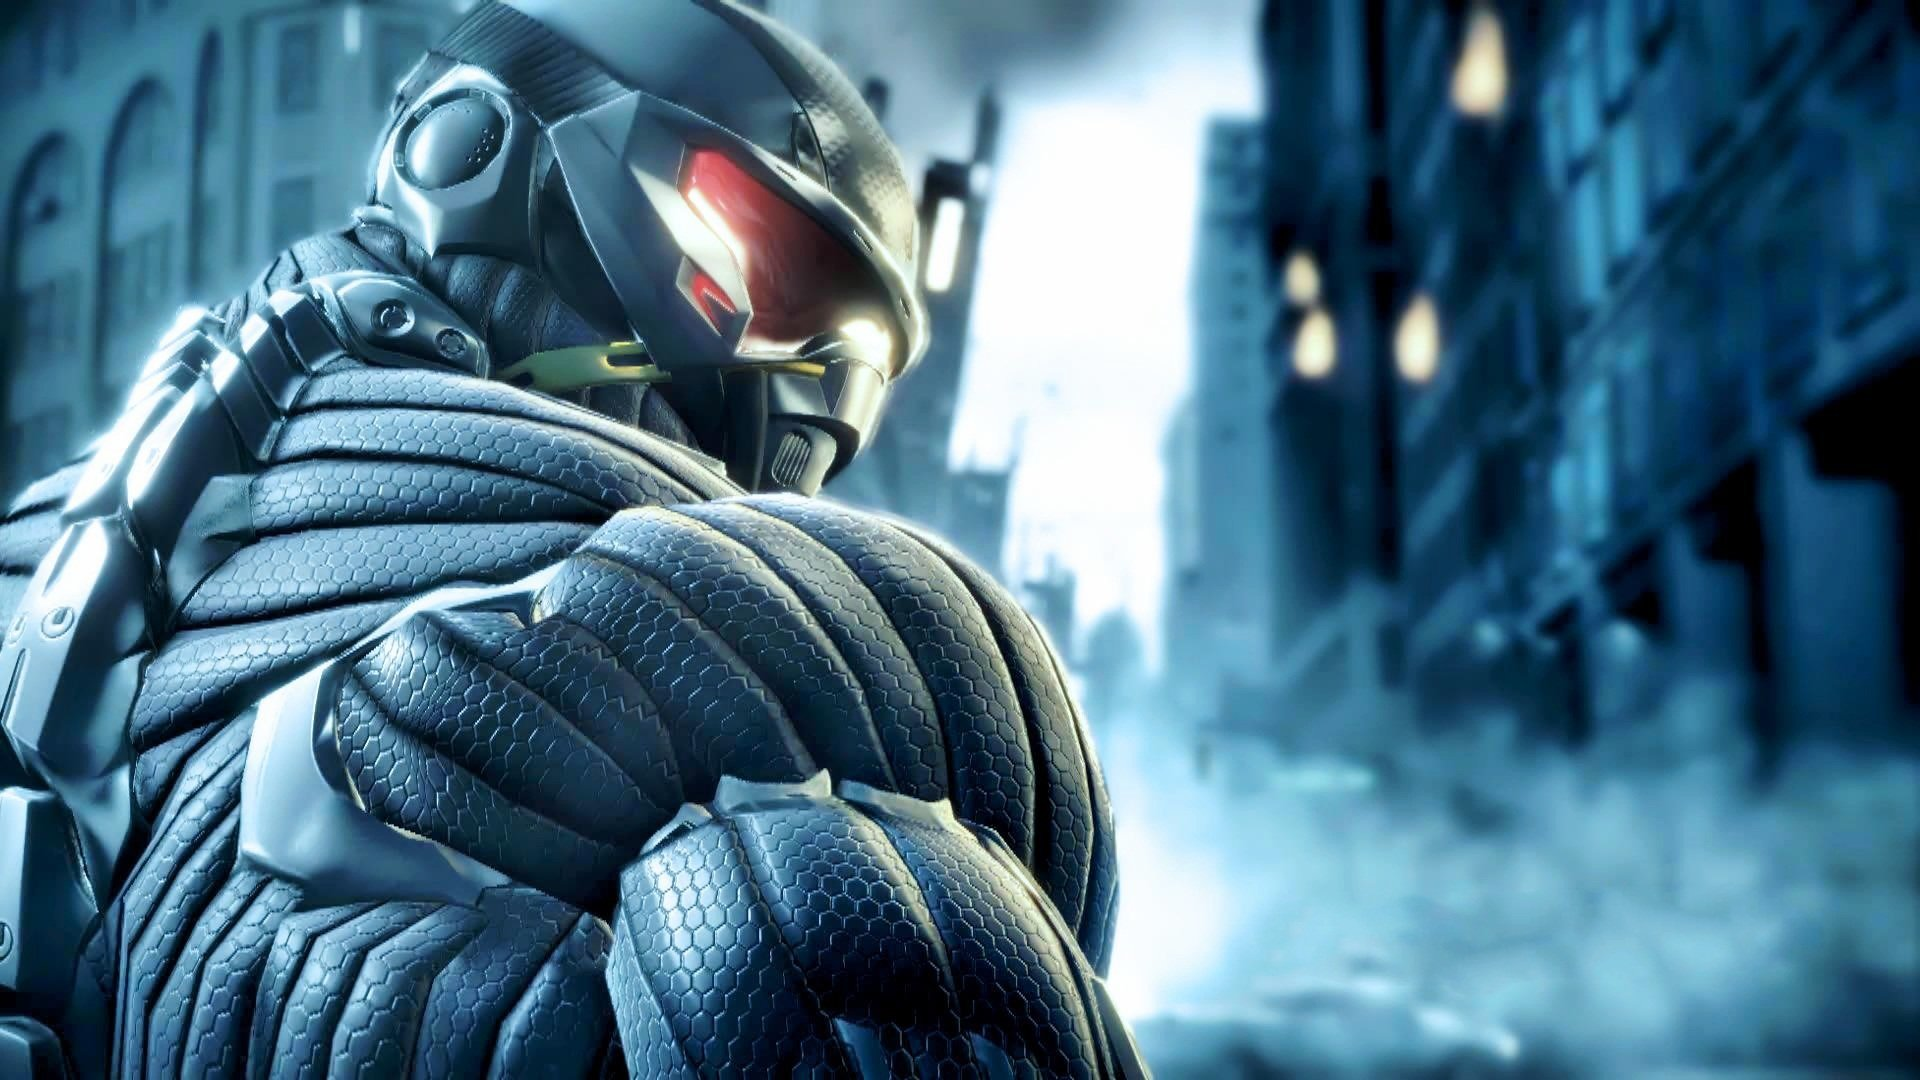 Crysis HD 1080p 19490 wallpaper